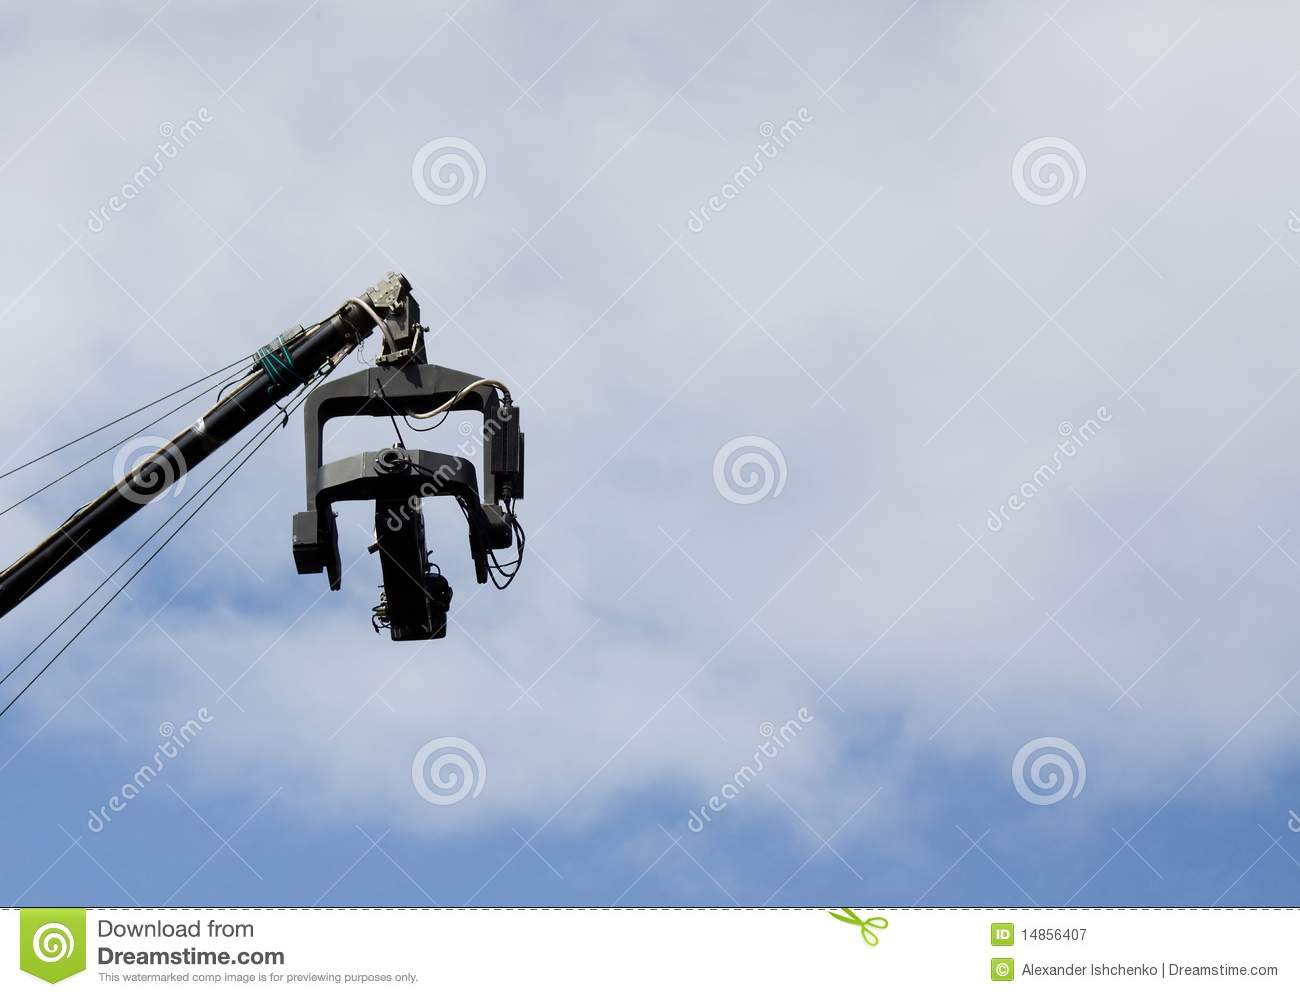 Video camera above the sky.